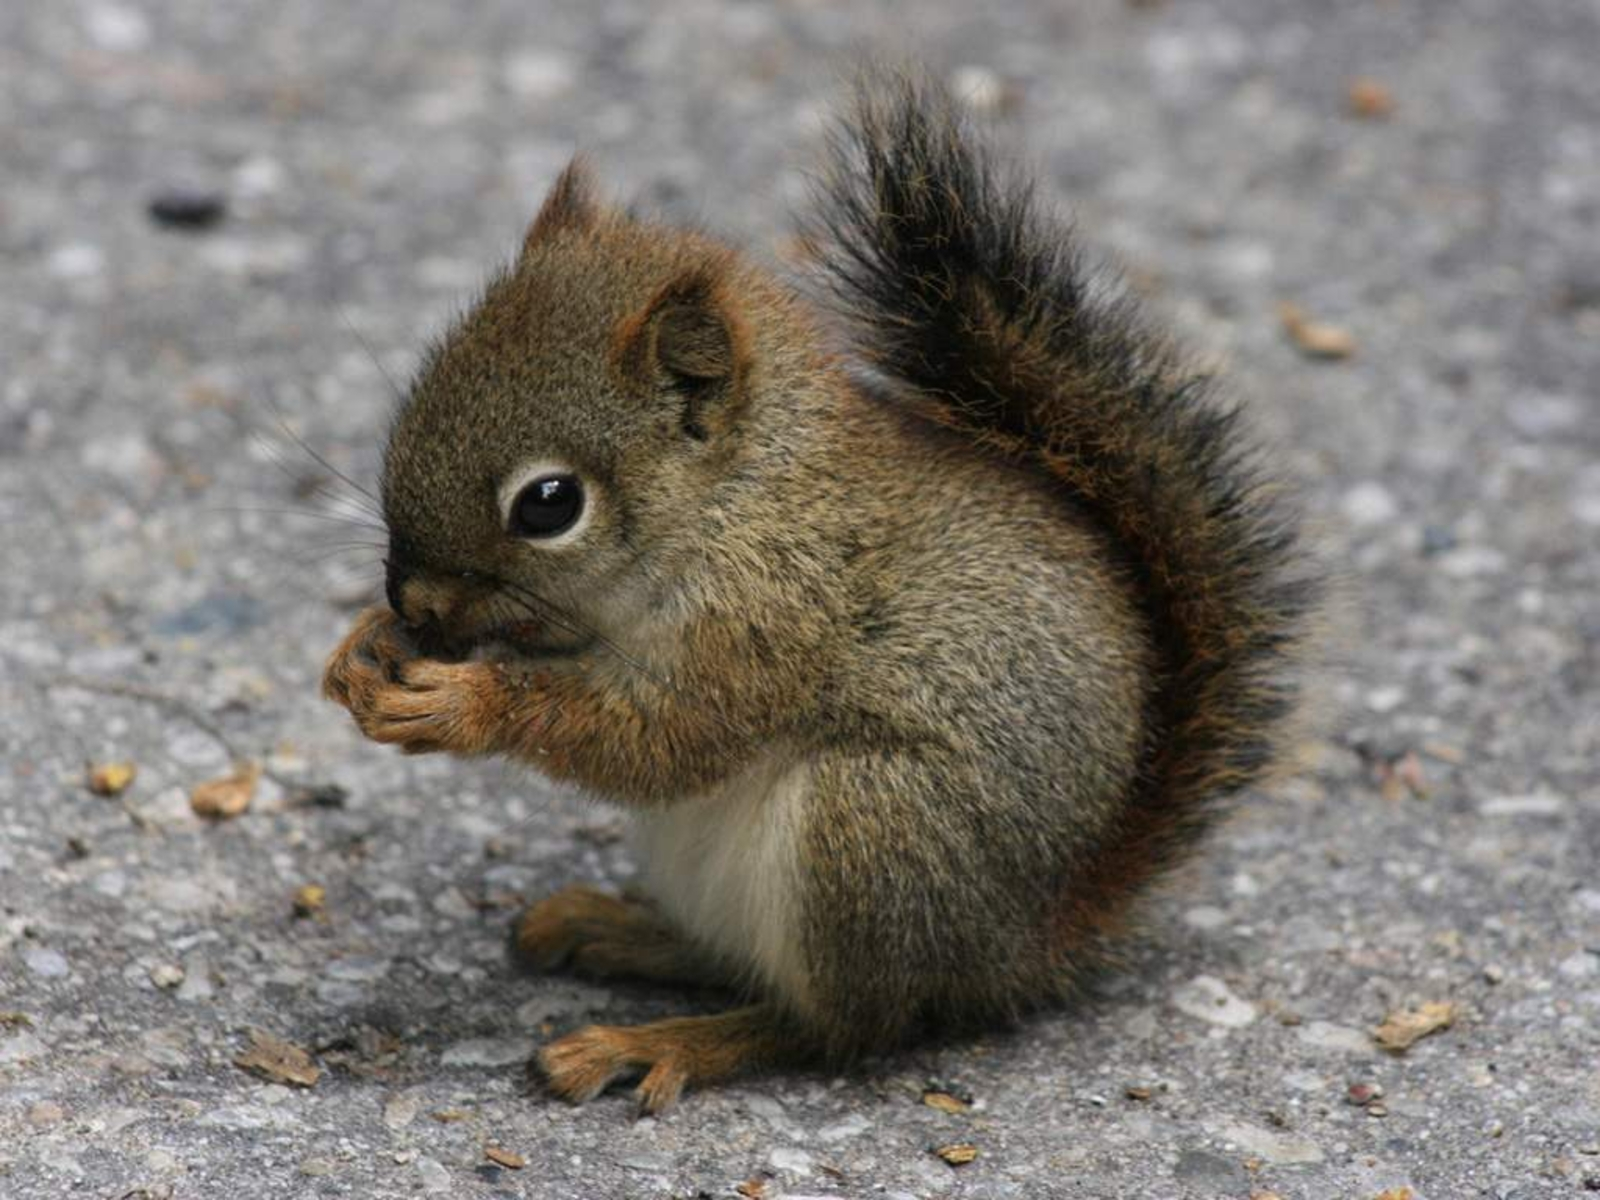 Desktop Wallpapers Baby Squirrel Cute Animal Wallpaper   iWallScreen 1600x1200